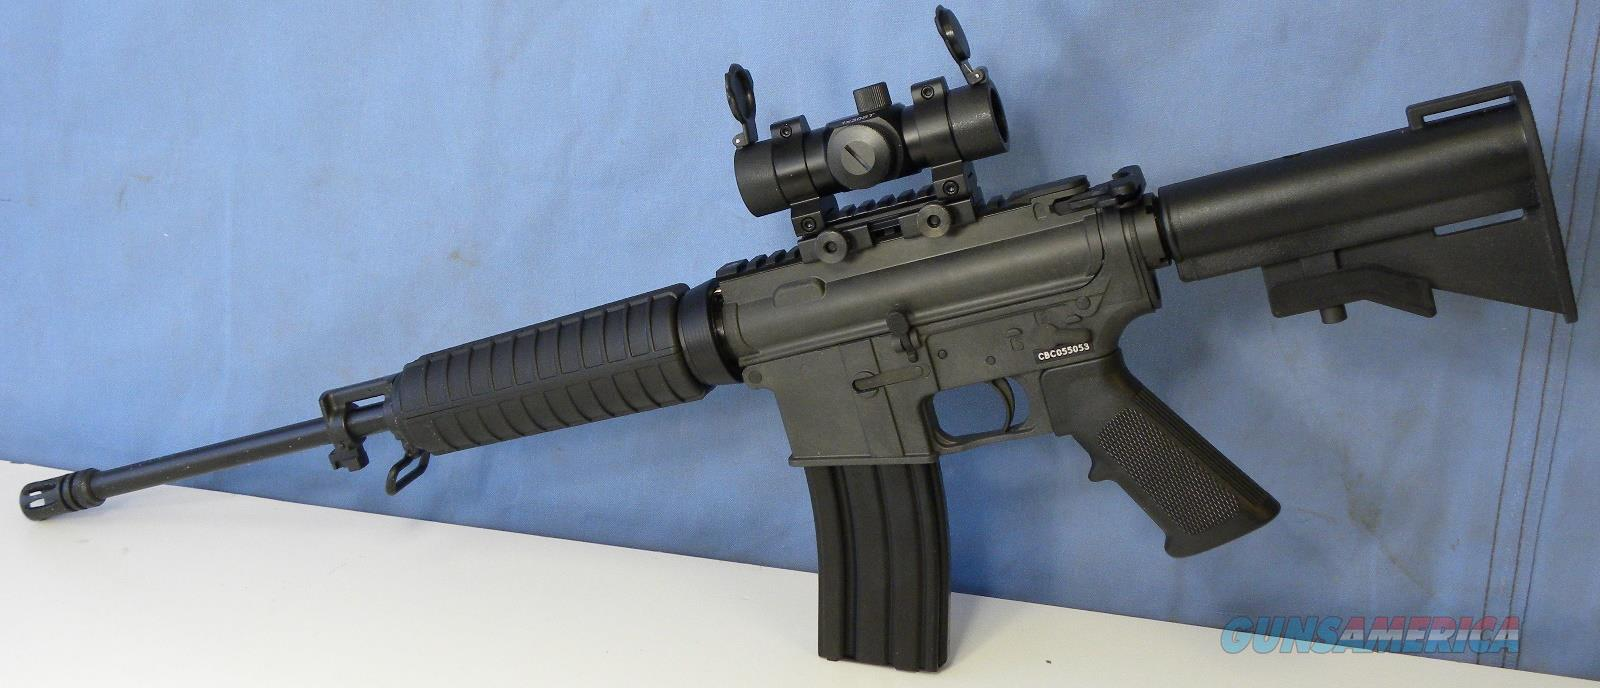 Bushmaster Carbon 15 Optics Ready  Guns > Rifles > Bushmaster Rifles > Complete Rifles